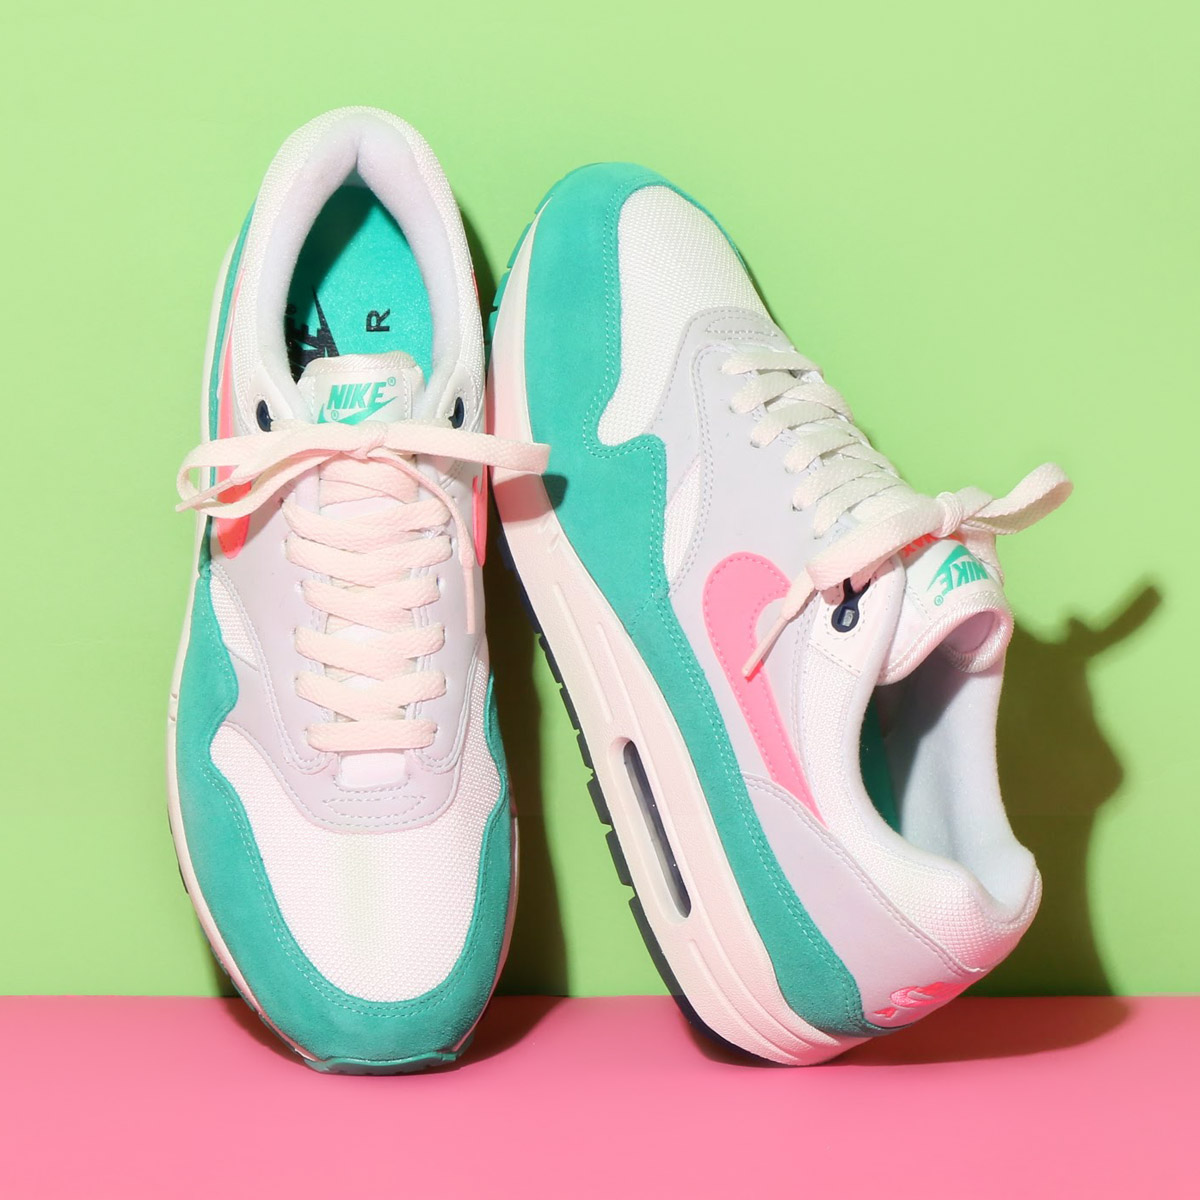 new style 27c5d 1a481 NIKE AIR MAX 1 (Kie Ney AMAX 1) (SUMMIT WHITE SUNSET PULSE-KINETIC GREEN)  18SU-S